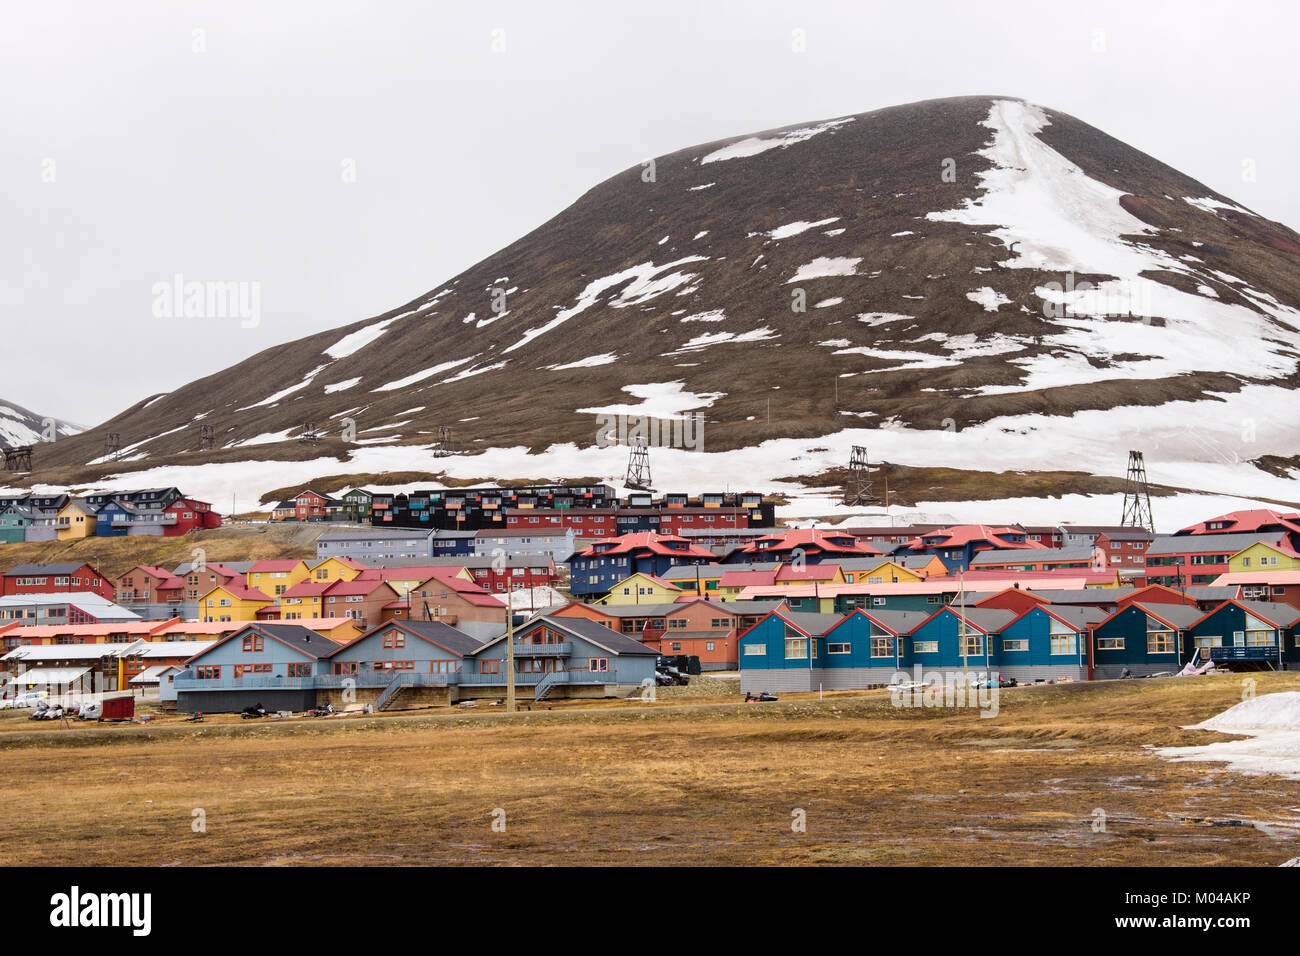 Colourful wooden residential houses in summer in old mining town of Longyearbyen, Spitsbergen Island, Svalbard, - Stock Image